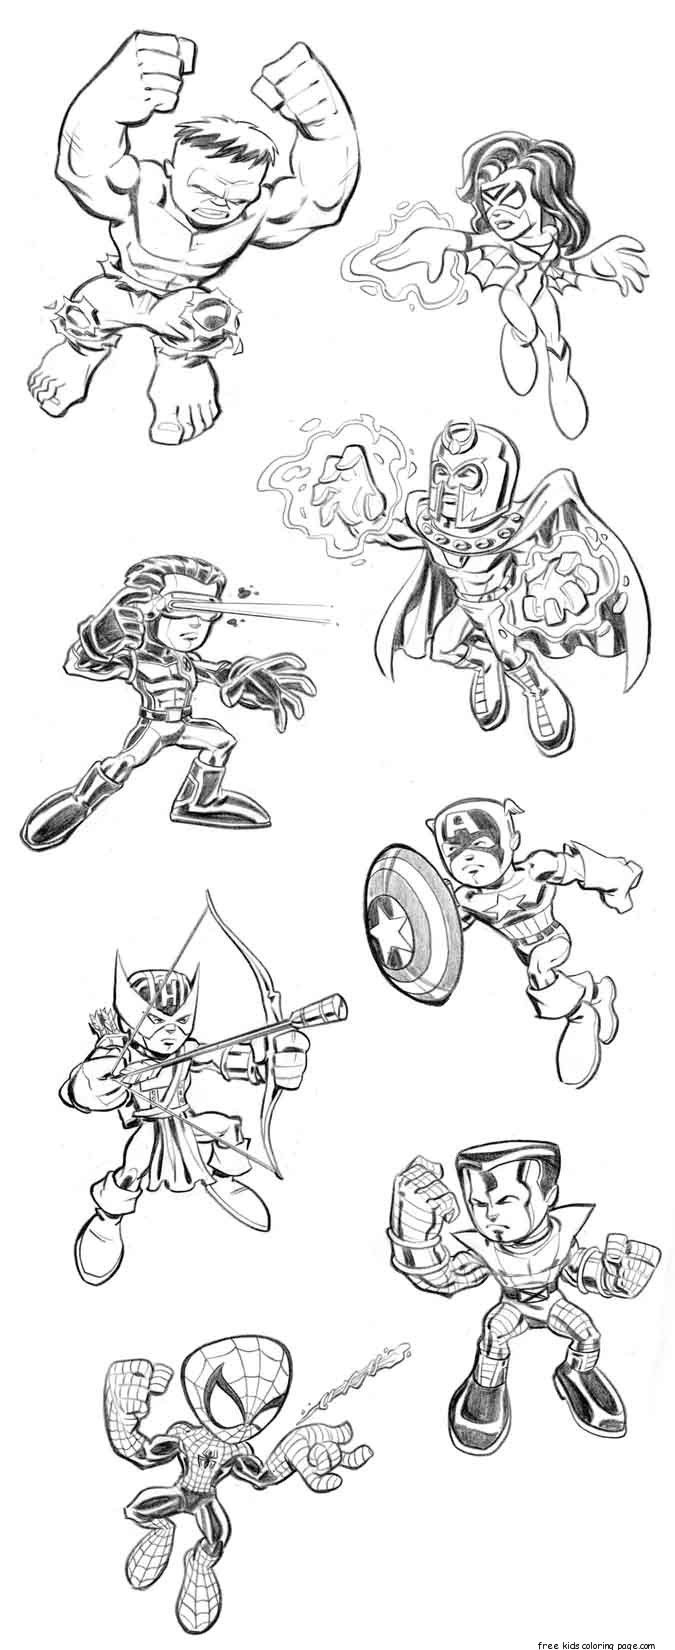 Lego avengers printable coloring pages - Lego Superheroes The Avengers Coloring Pages Printable For Boys Print Out Lego Superheroes The Avengers Coloring Pages For Kids